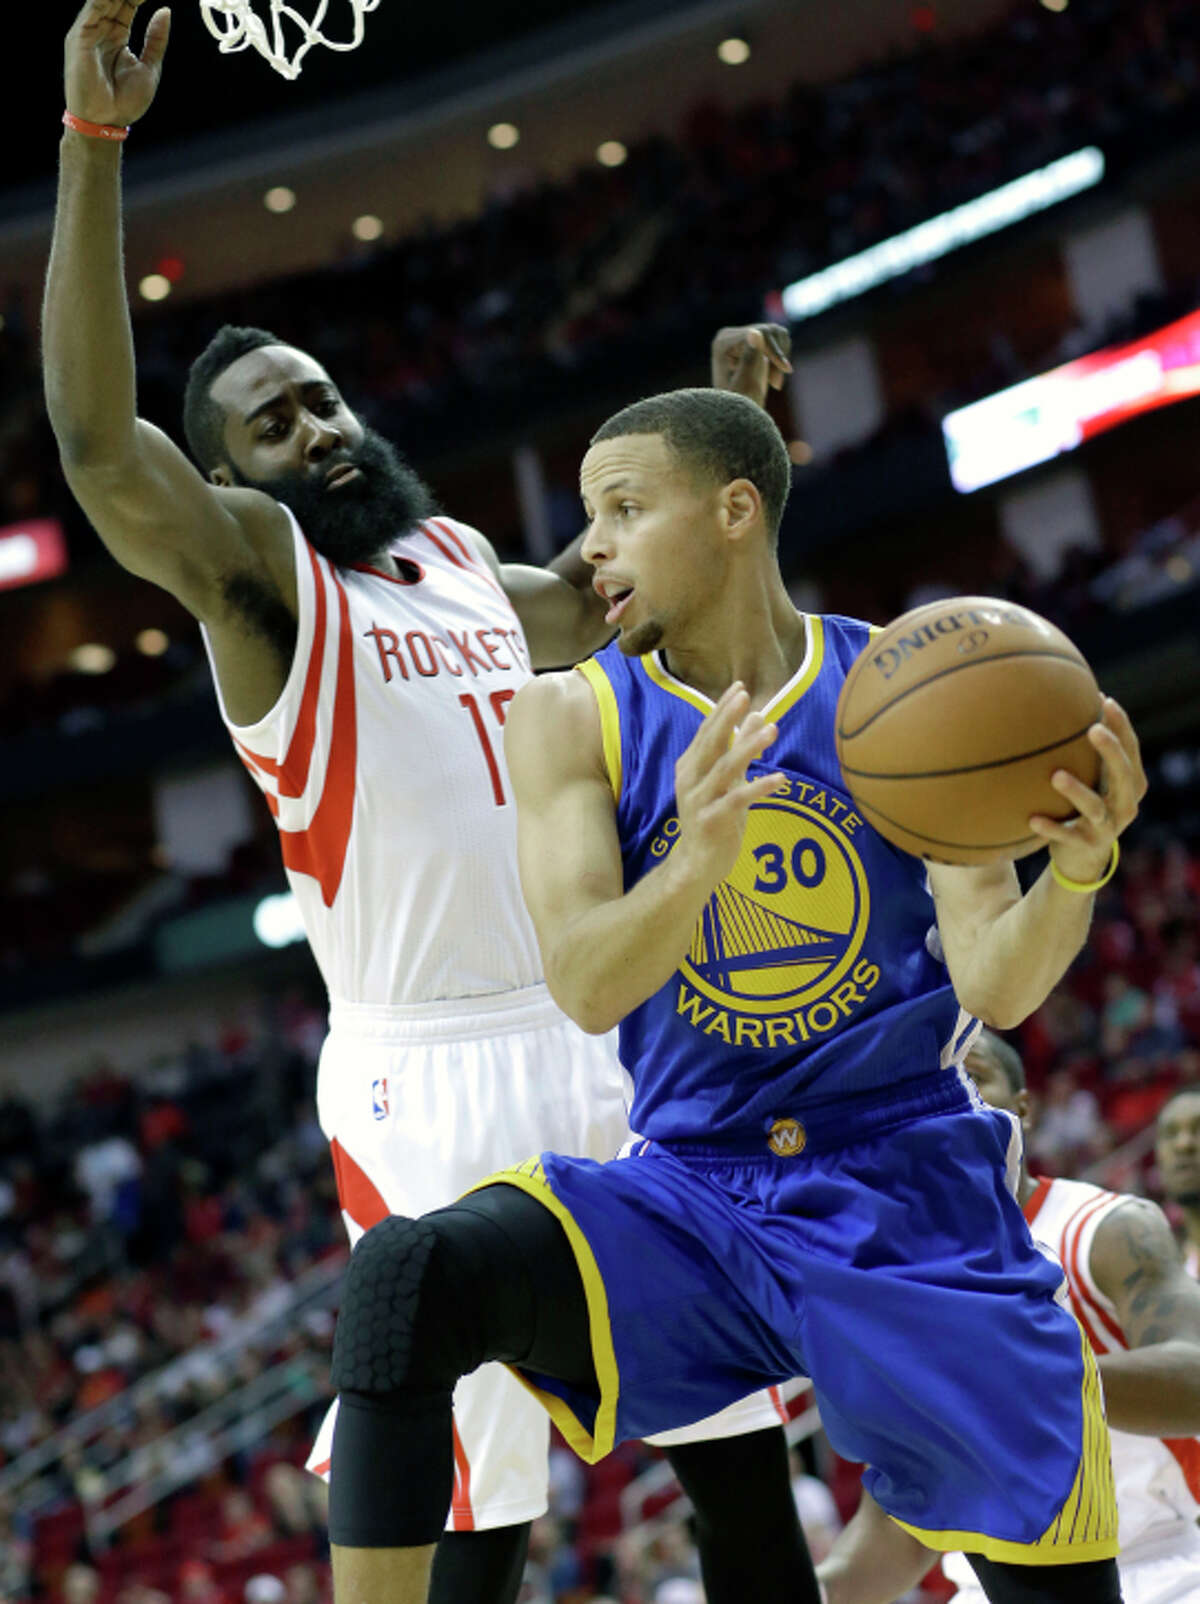 Stephen Curry, who had 34 points, is hounded by James Harden.